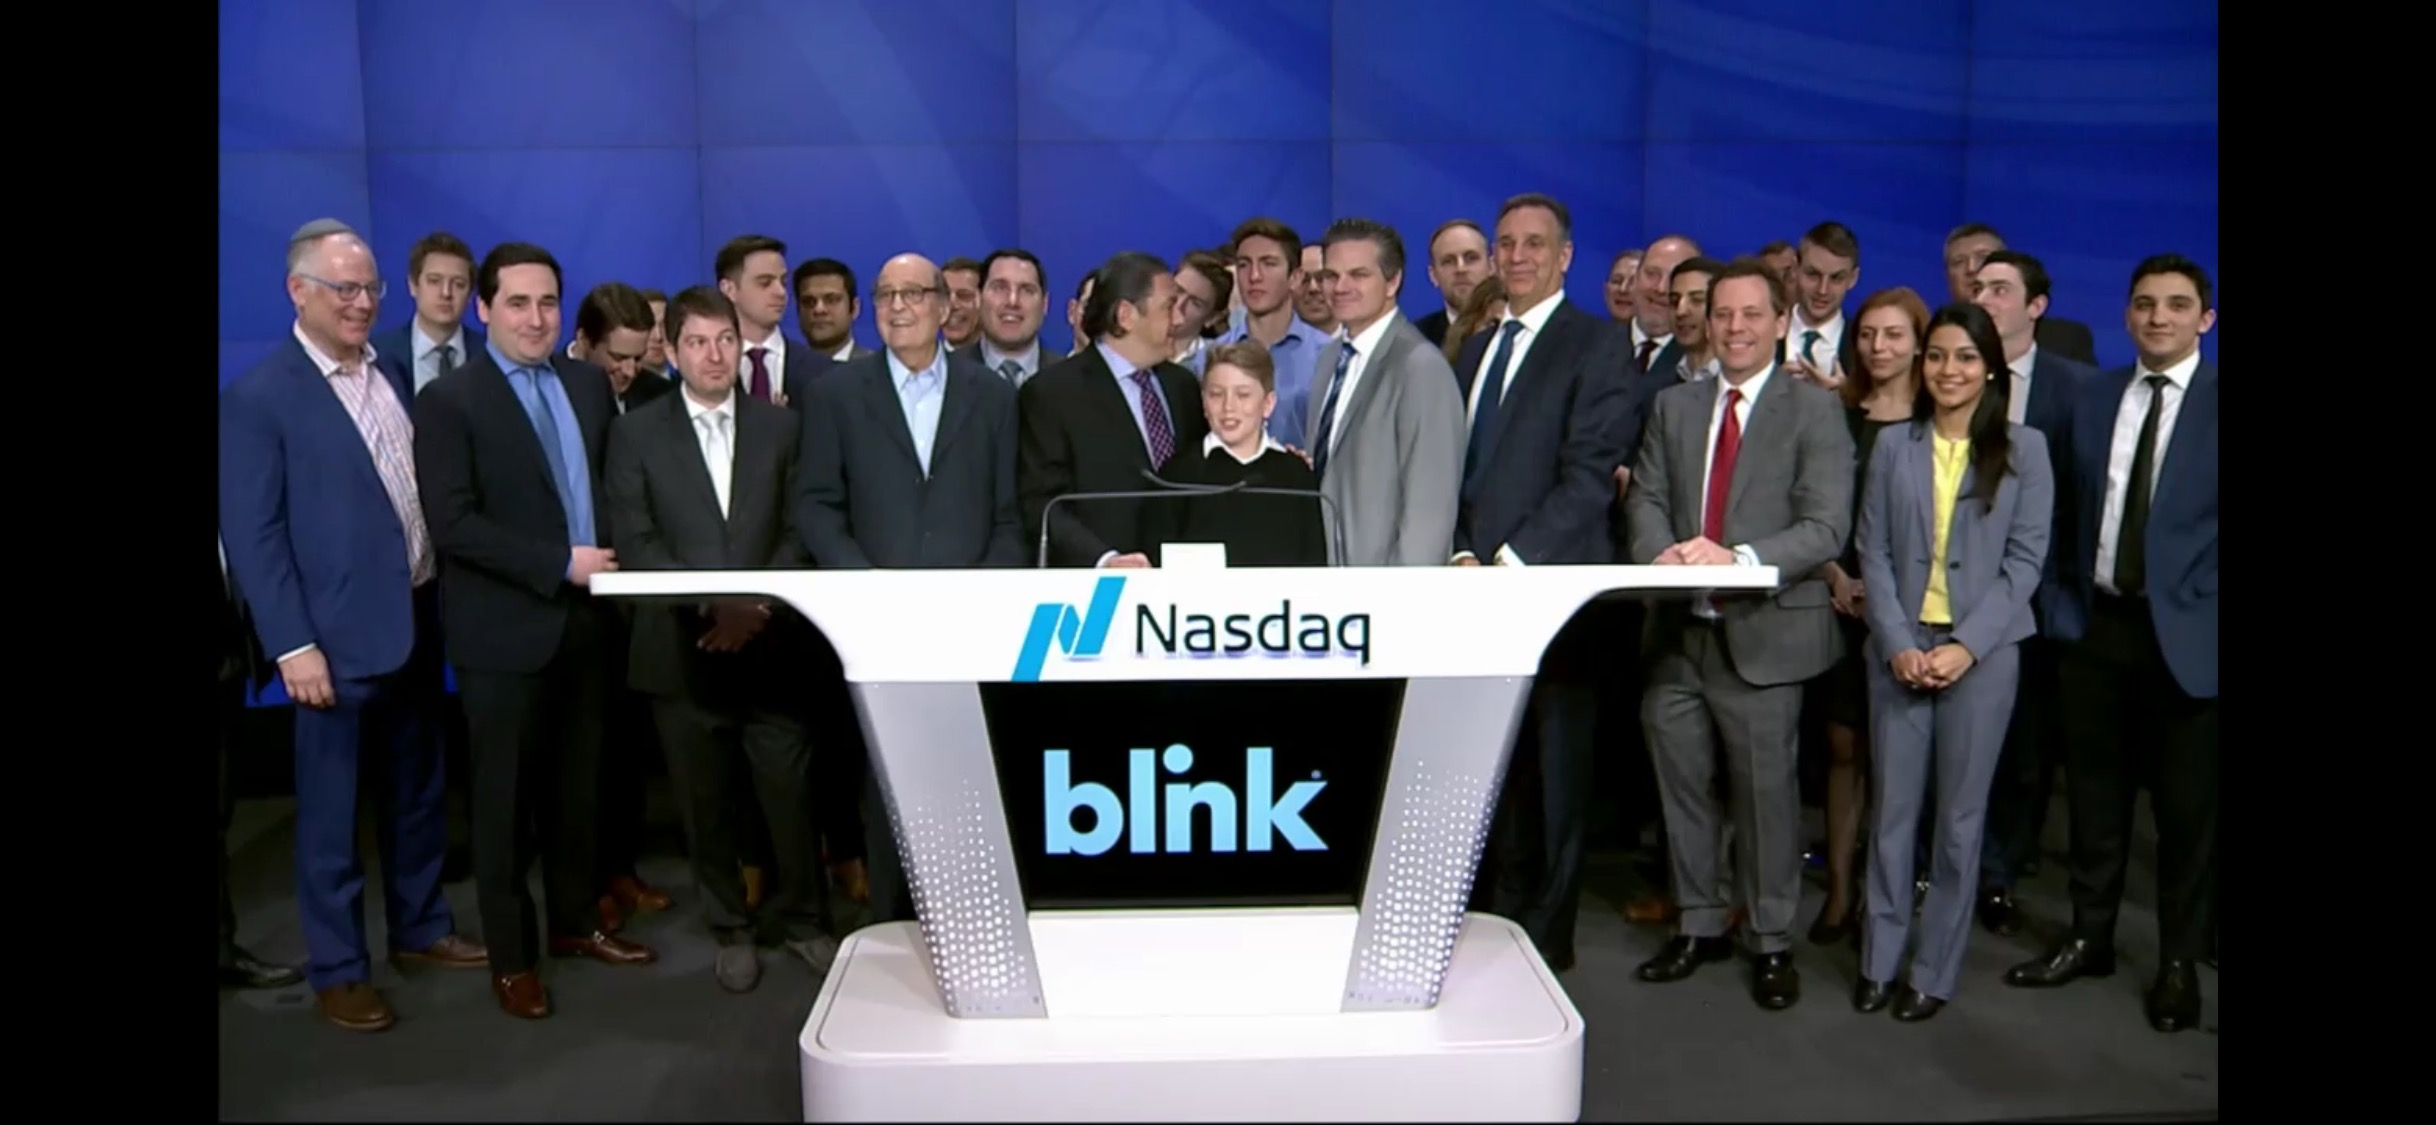 What Are The Steps That Shareholders Are Taking At The Blink Charging Company?